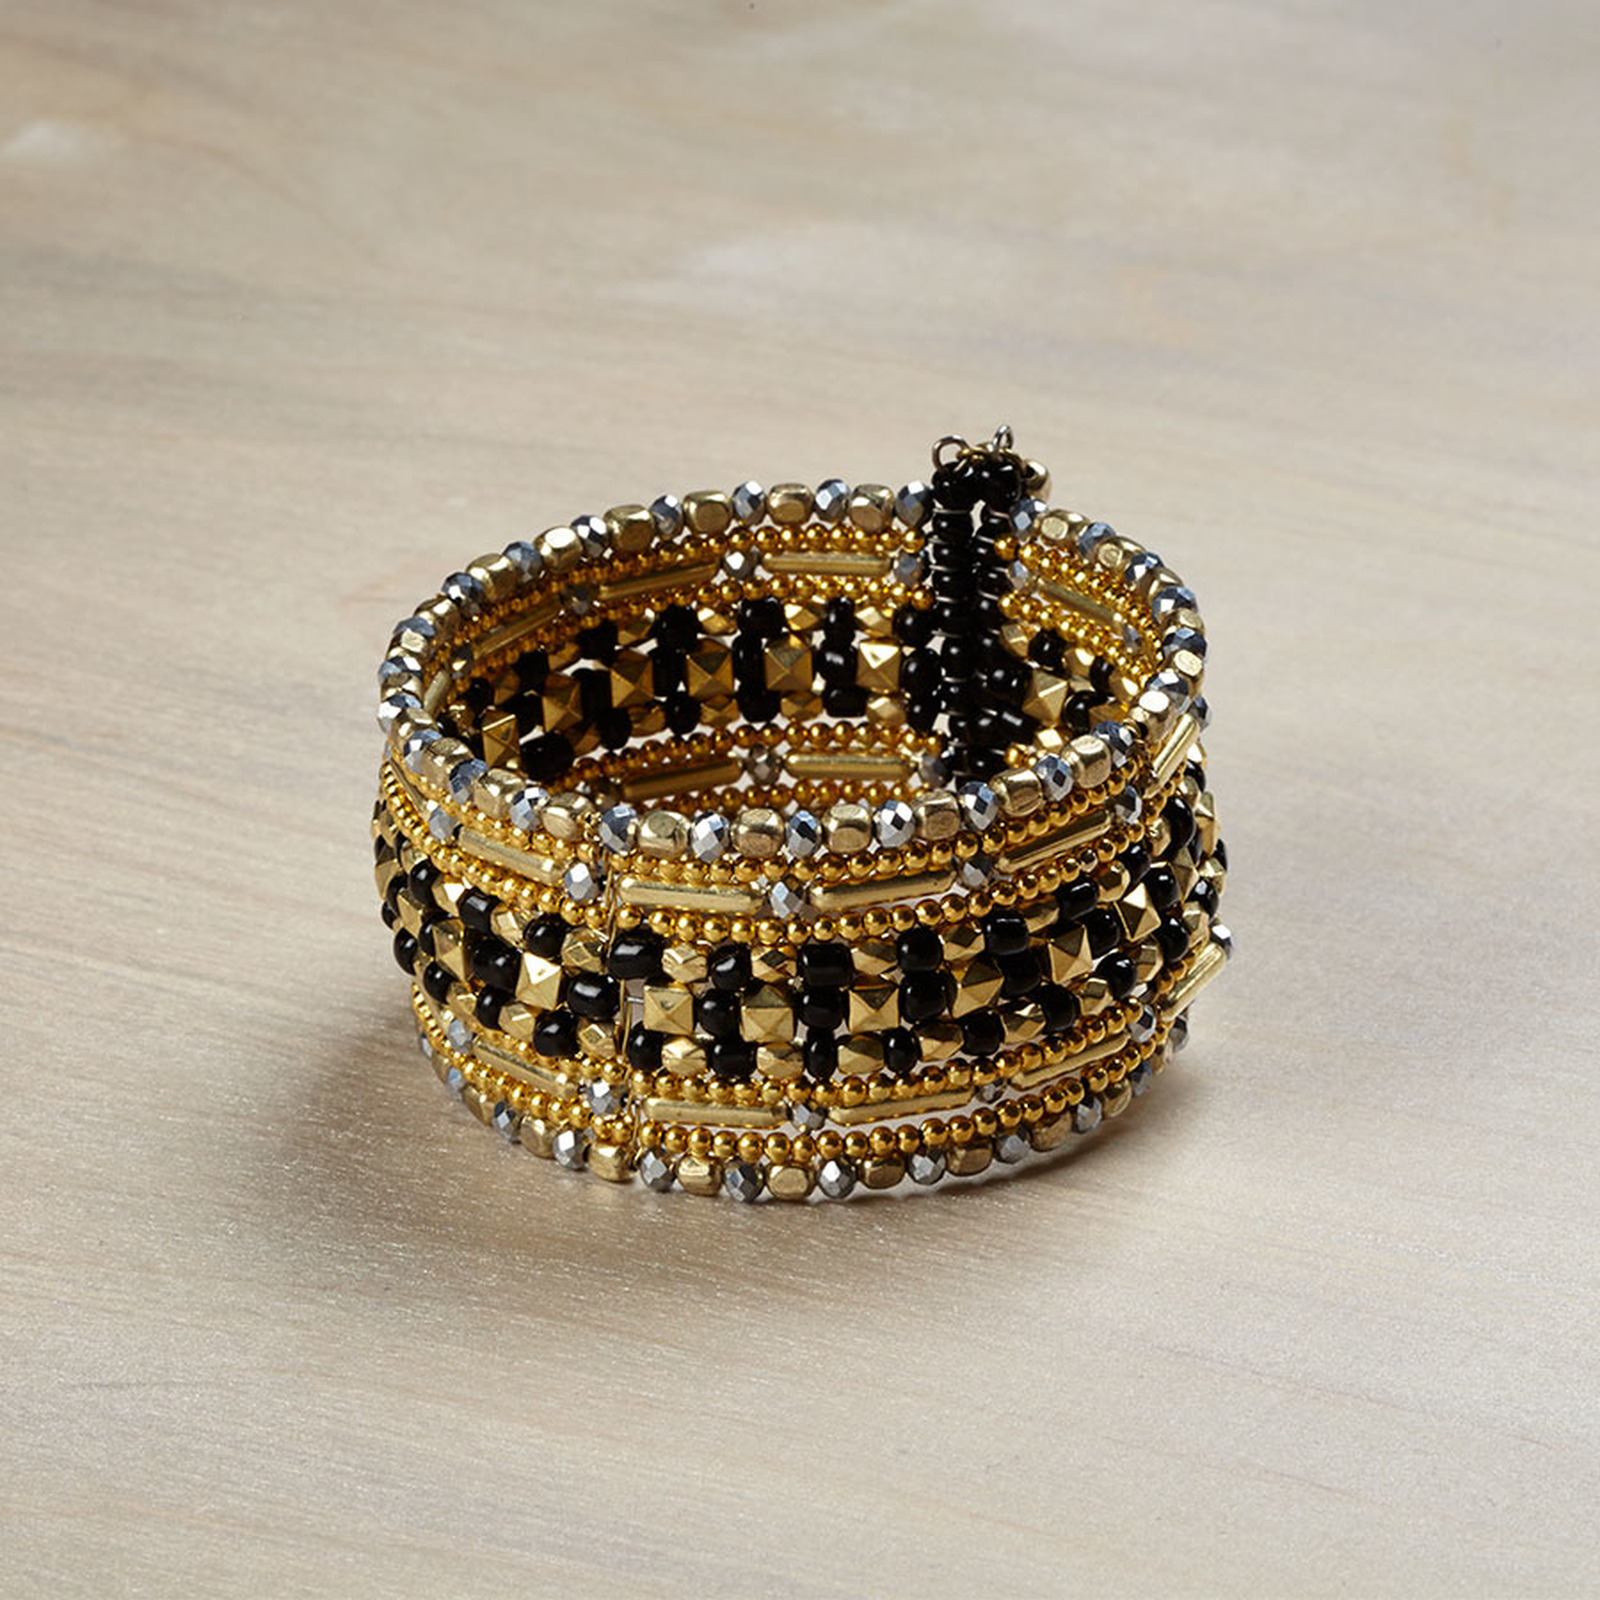 Gold and hematite black statement fashion bracelet w seed beads